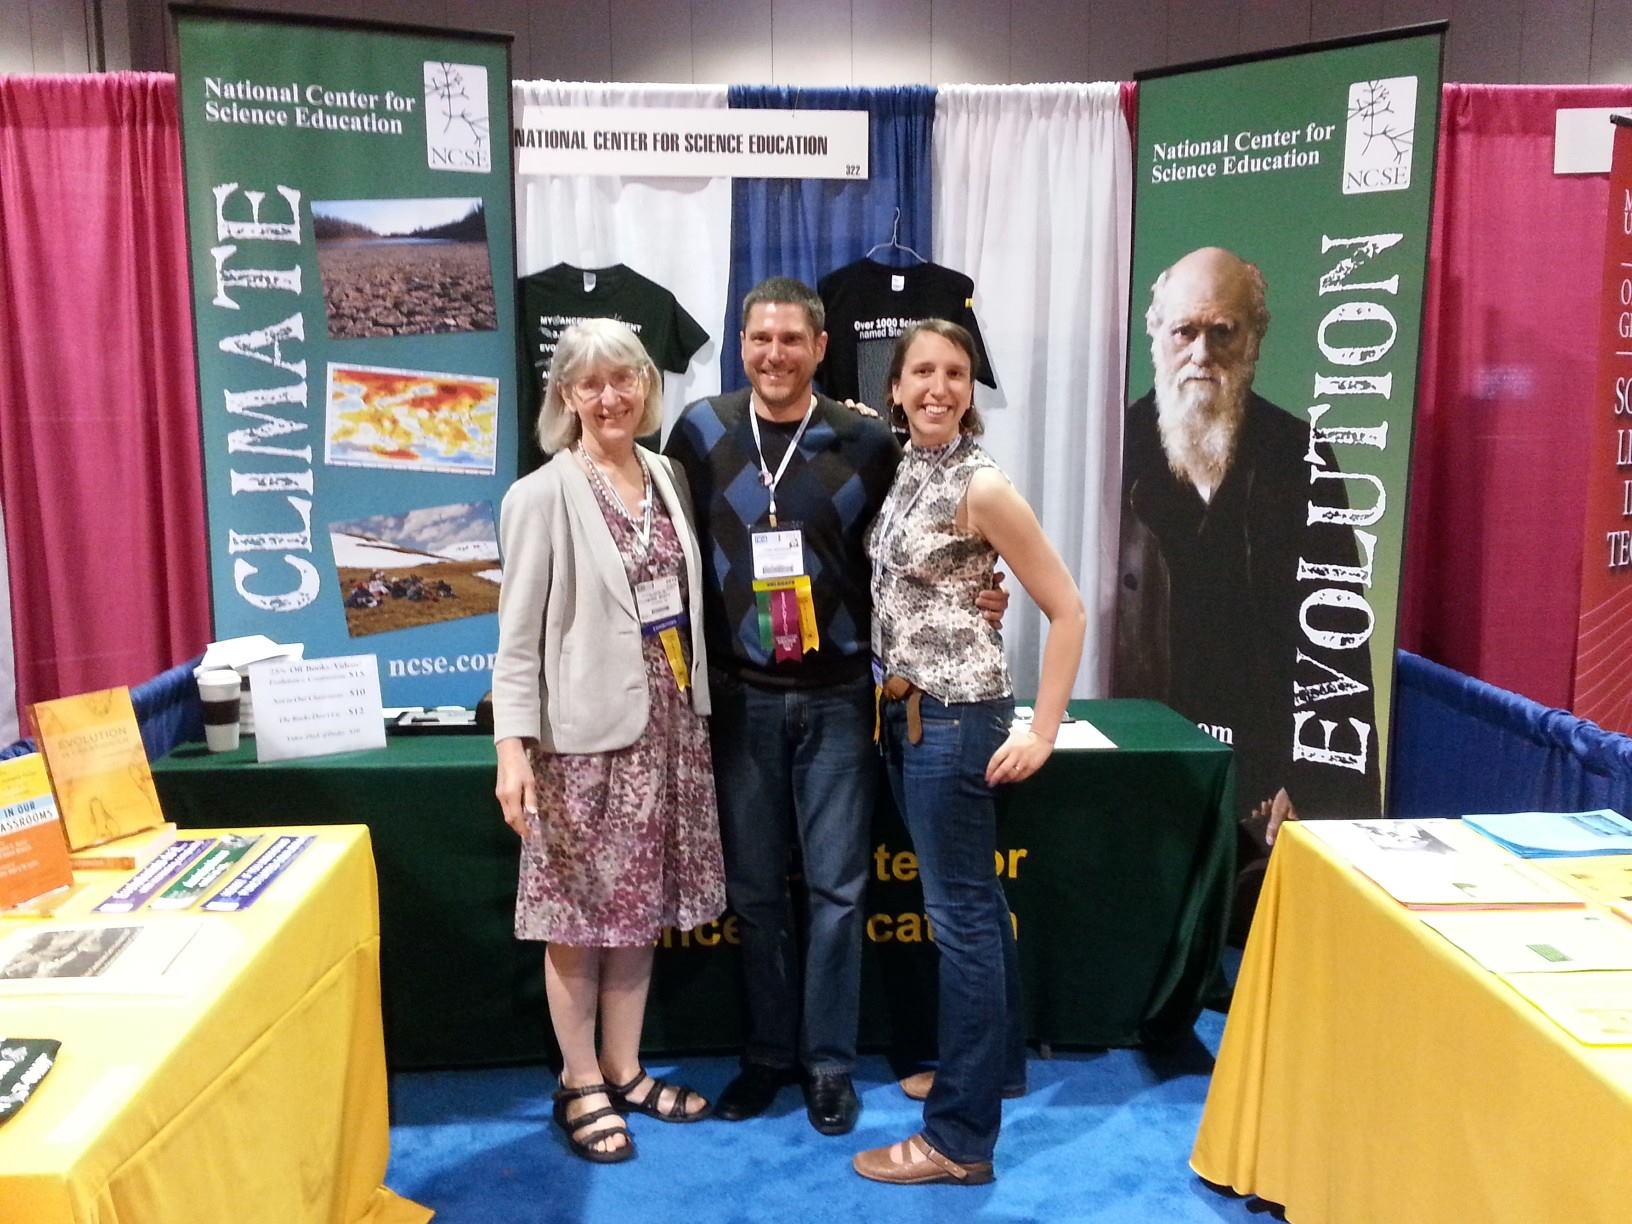 NCSE Expo Booth 2013.jpg